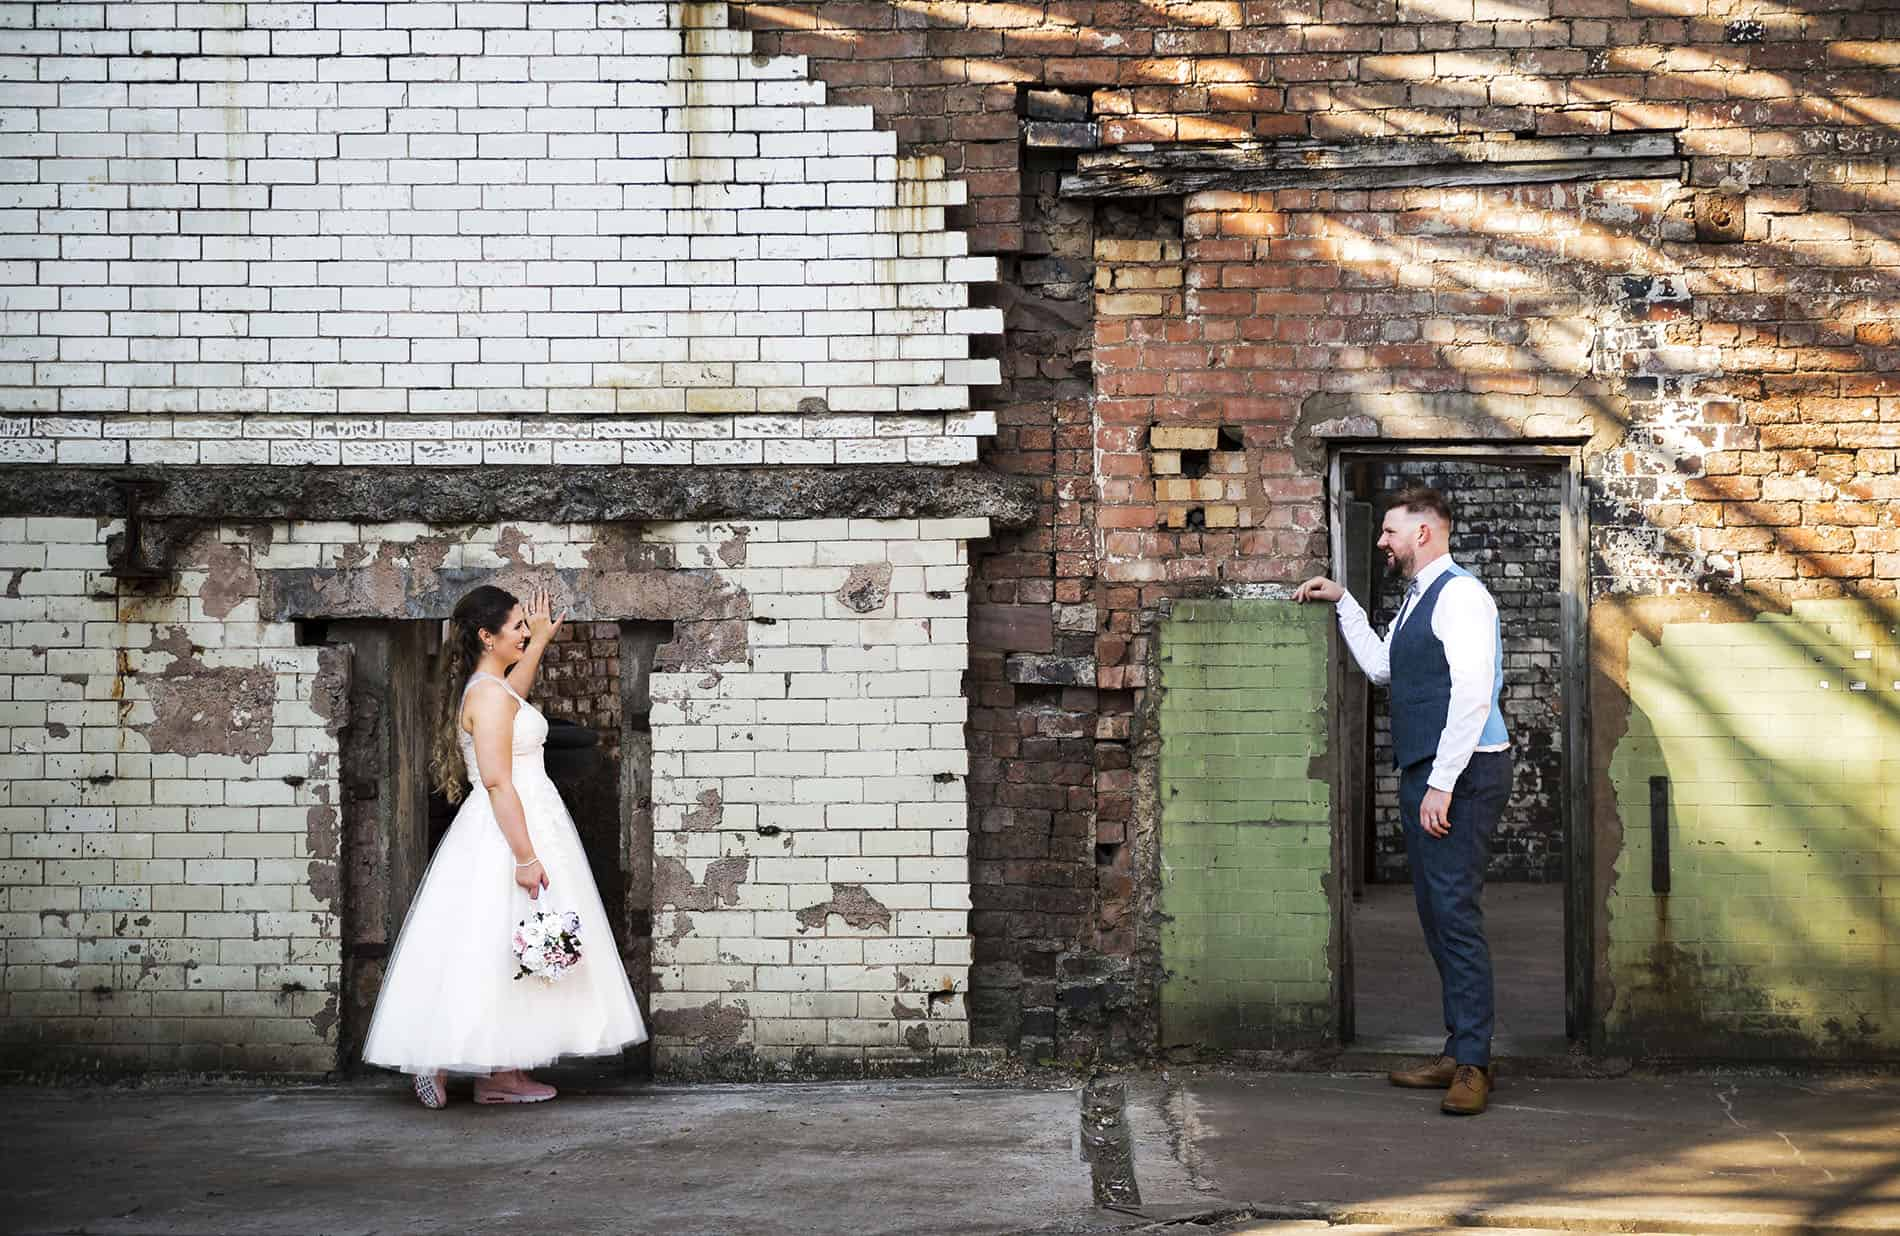 The-Bond-Company-Wedding-Photographer-Philip-James-covers-Birmingham-The-West-Midlands-Solihull-and-all-over-the-UK.-Wedding-photography-Birmingham-is-my-passion-102-of-135